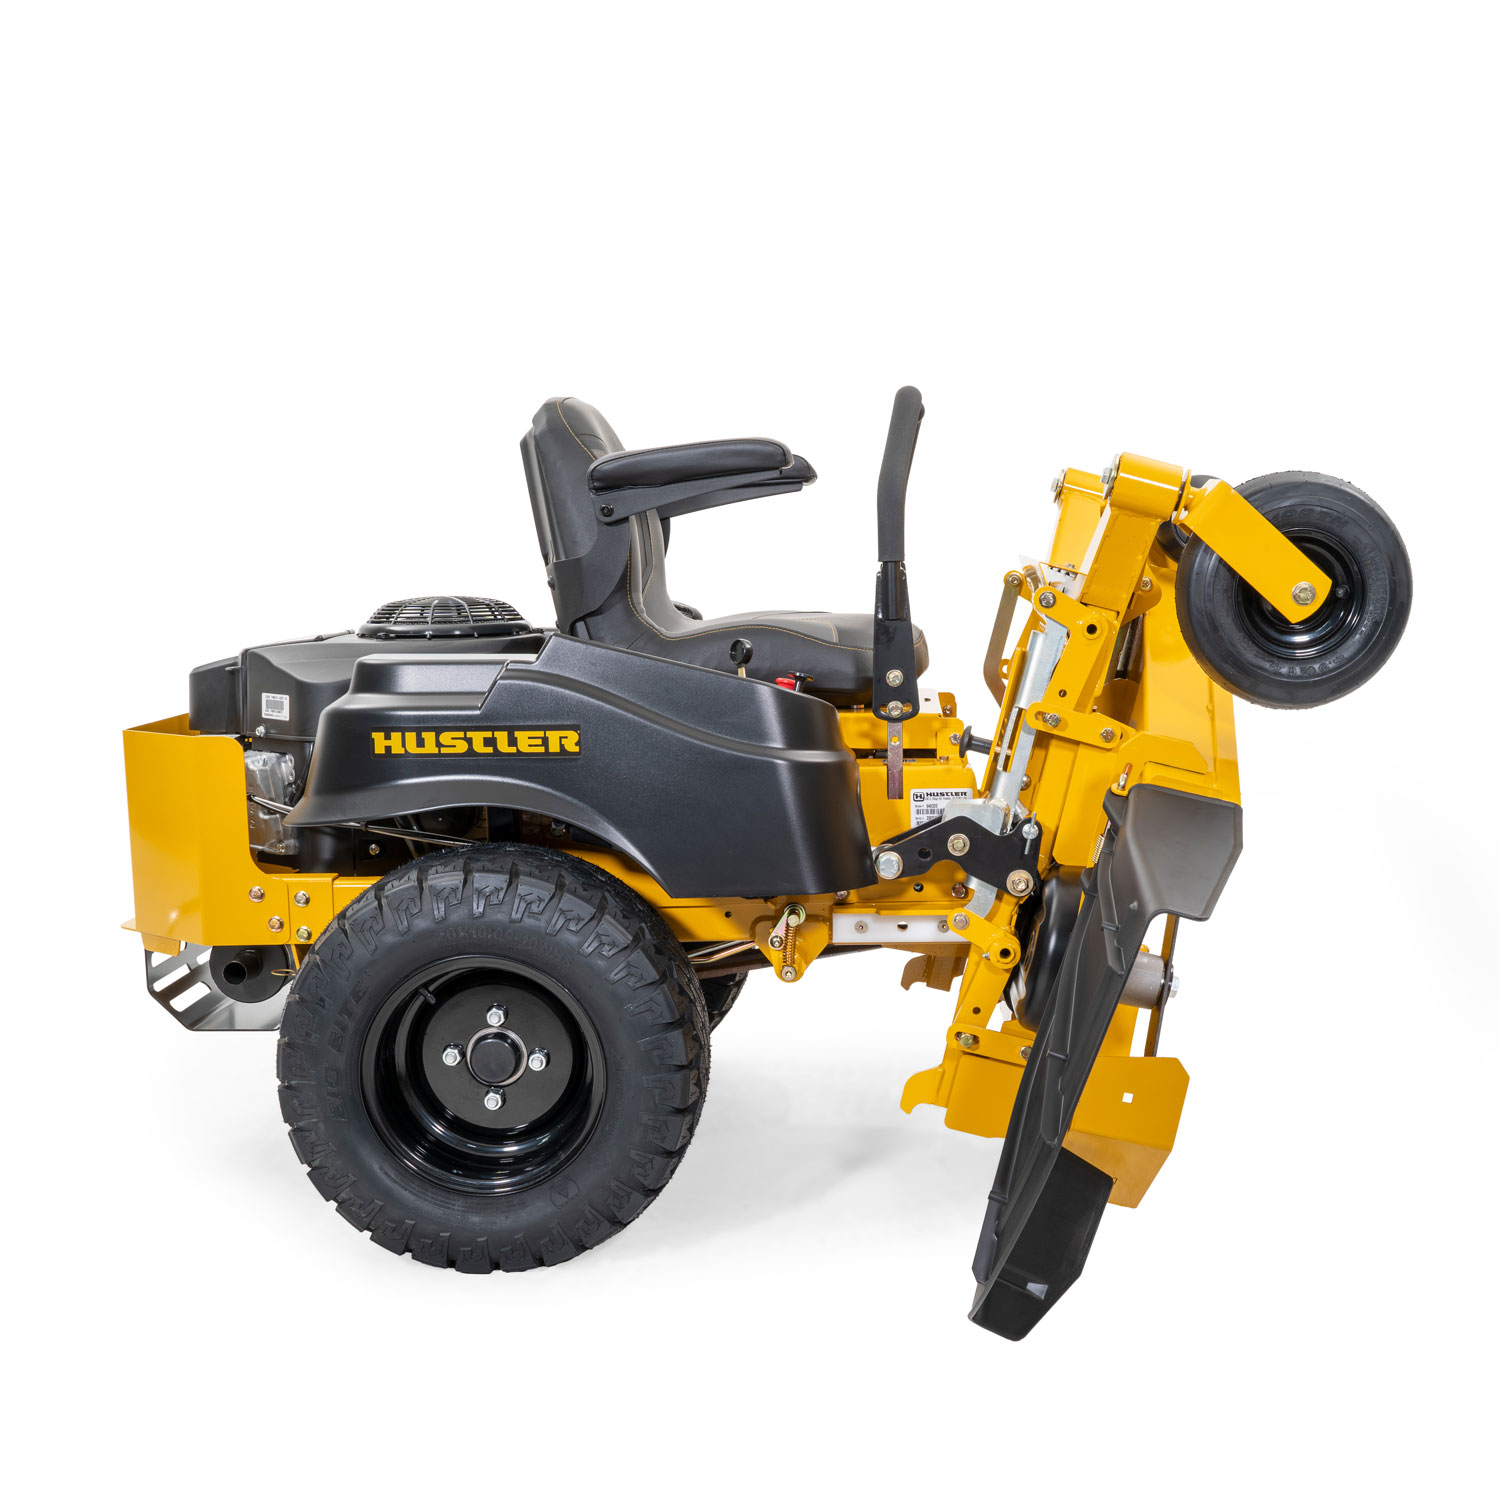 Image of the profile of a yellow riding mower with the frame and deck folded up